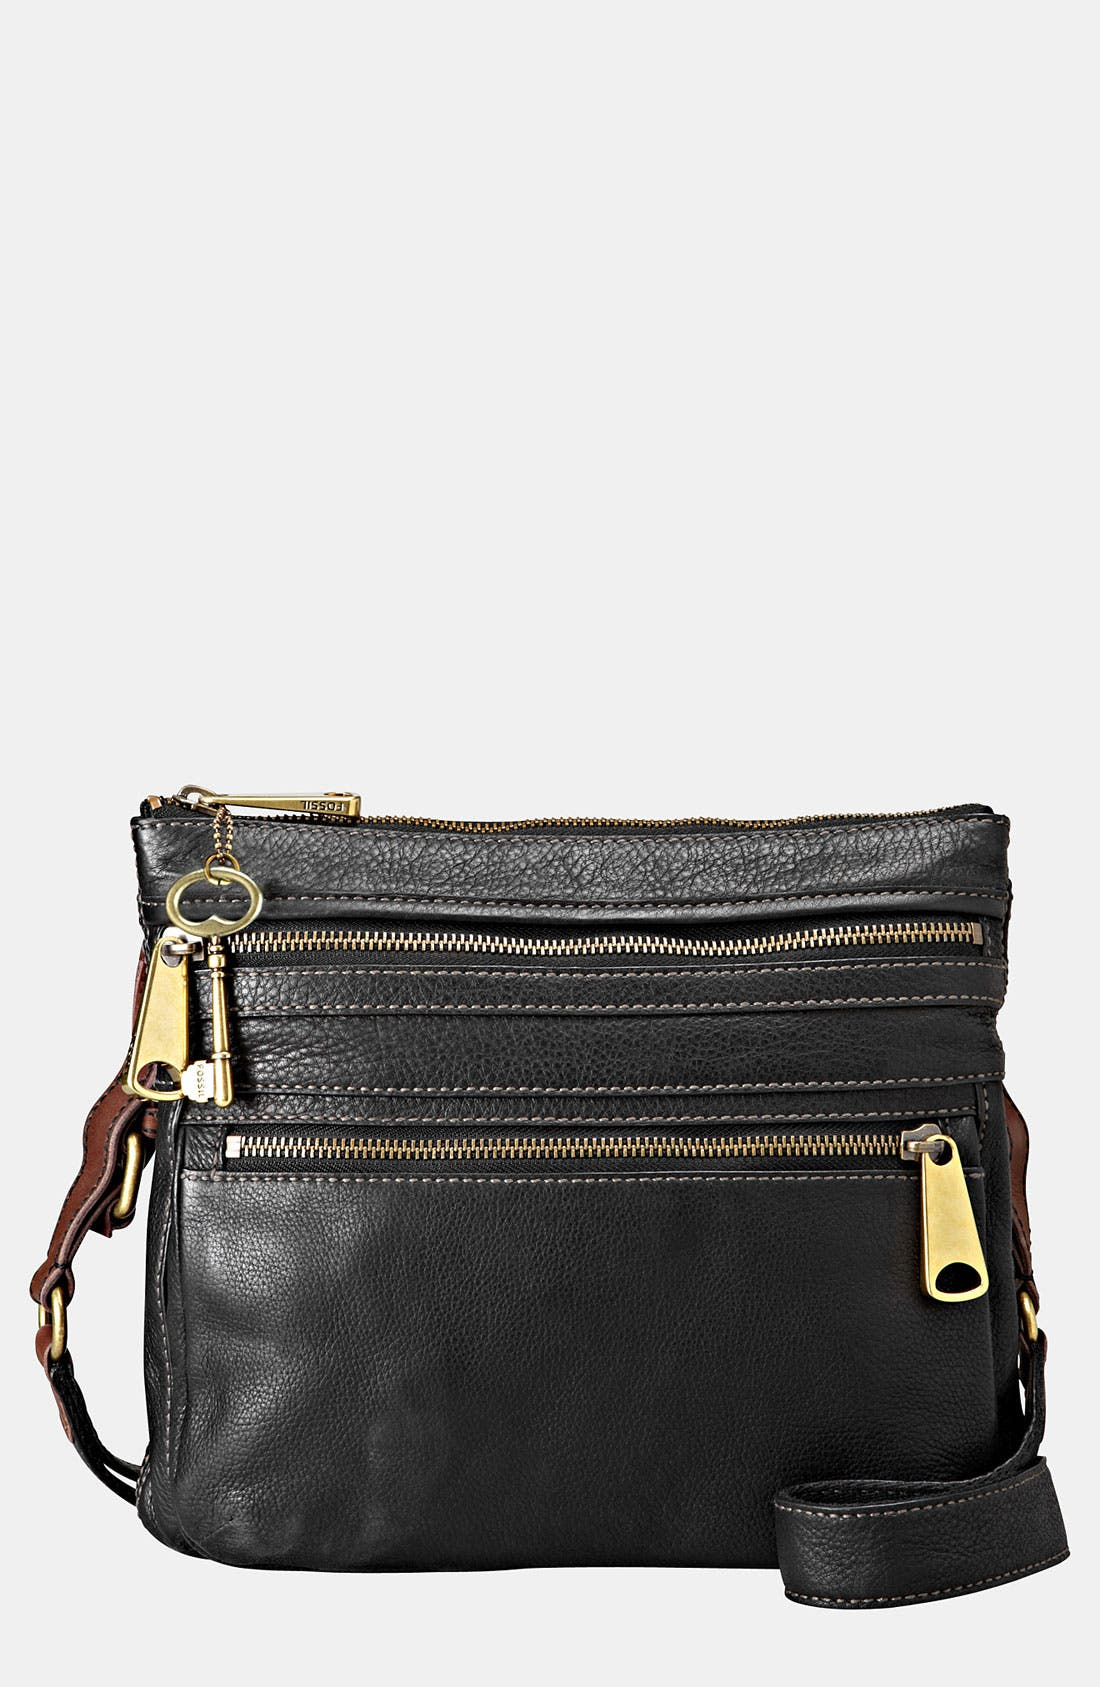 Main Image - Fossil 'Explorer' Crossbody Bag